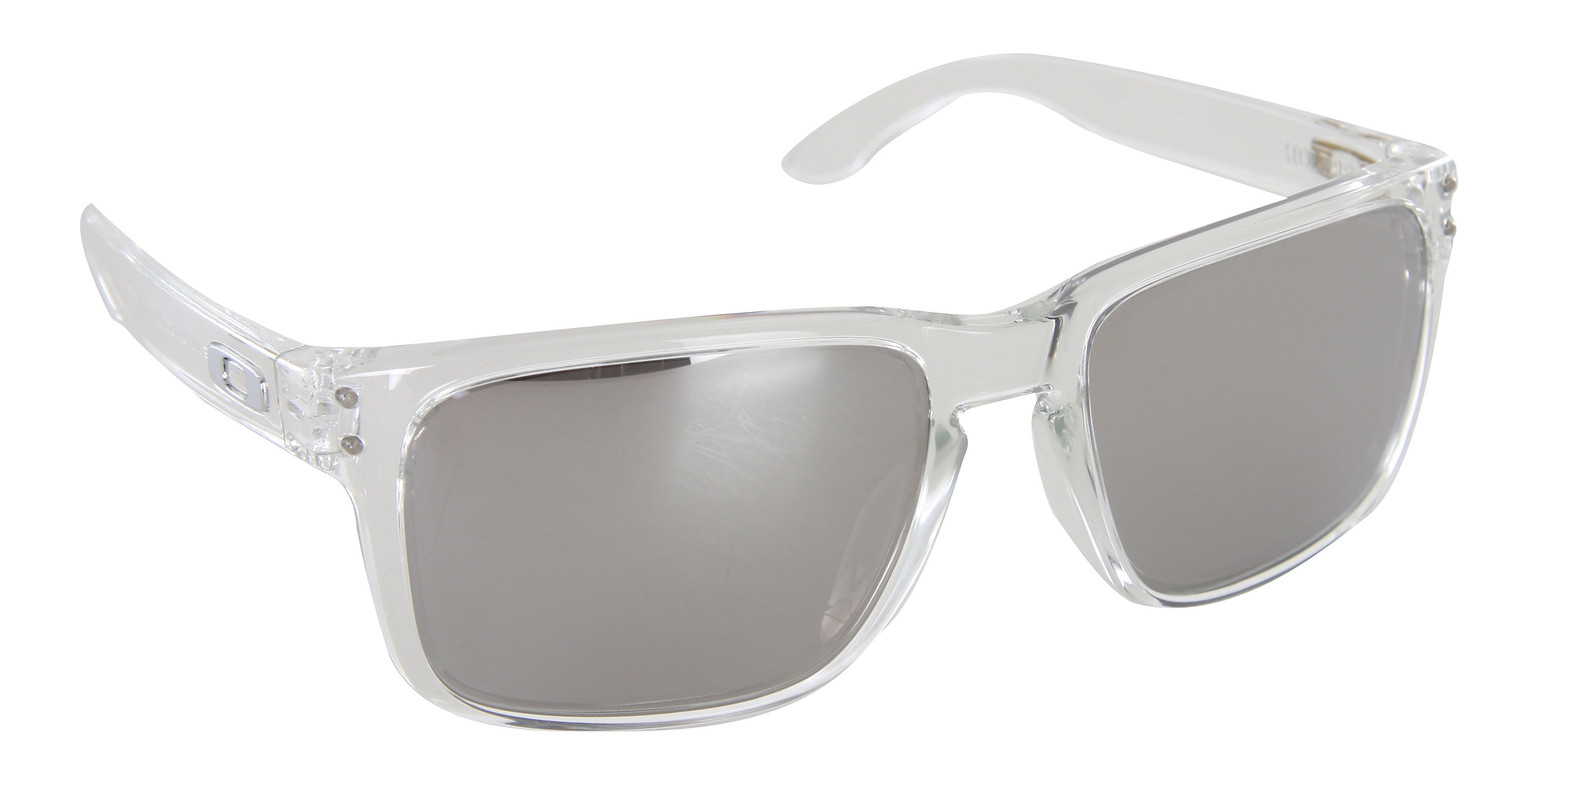 e1562beaf5 Oakley Holbrook Sunglasses Crystal Clear Chrome Iridium Lens ...